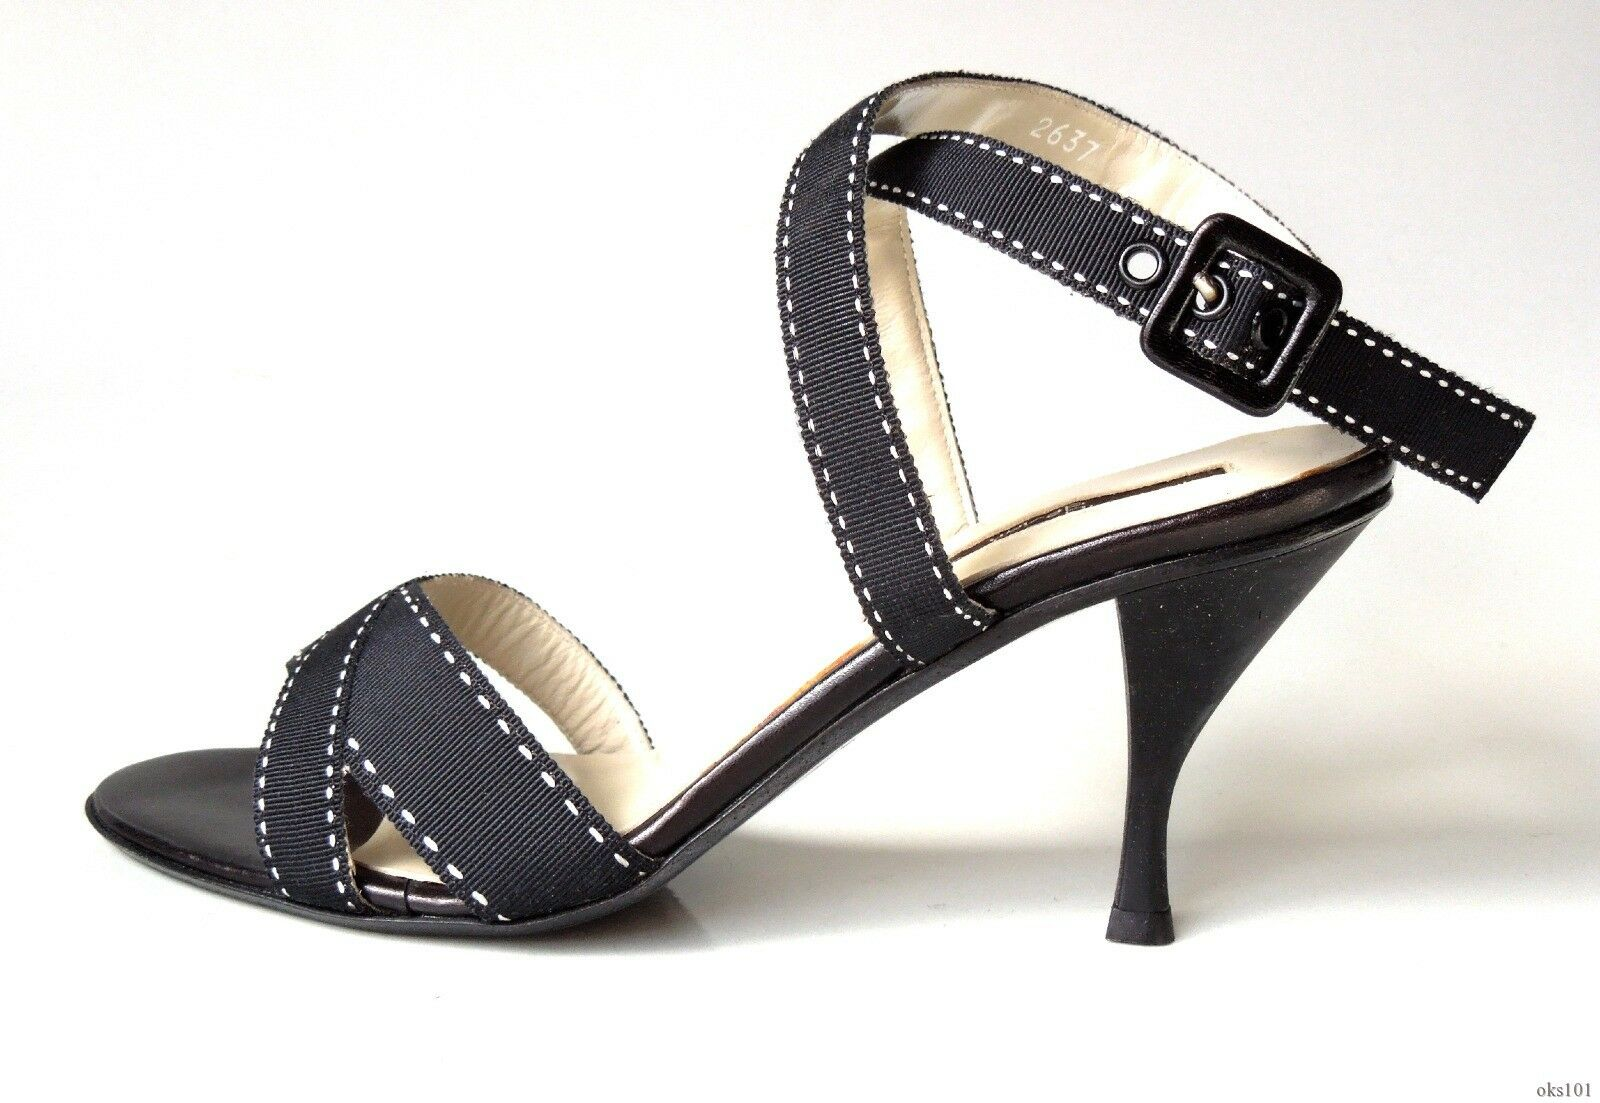 New heels Armando POLLINI schwarz ankle X-strap Sandales heels New schuhe  35 US 5 - HOT 535a4a